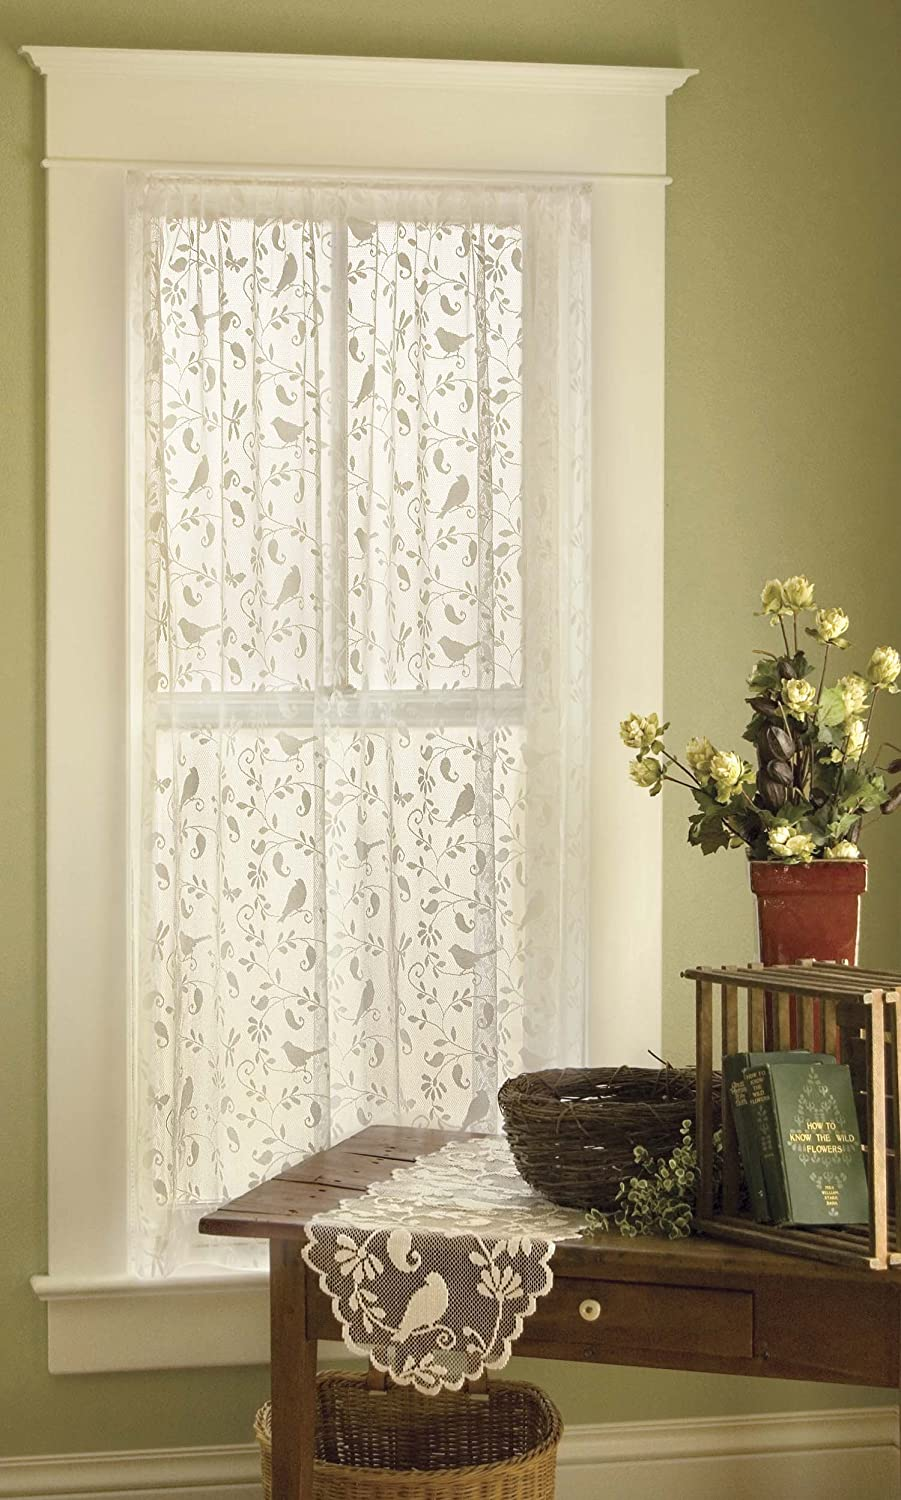 Amazon Heritage Lace Bristol Garden Panel 60 By 63 Inch Cafe Home Kitchen